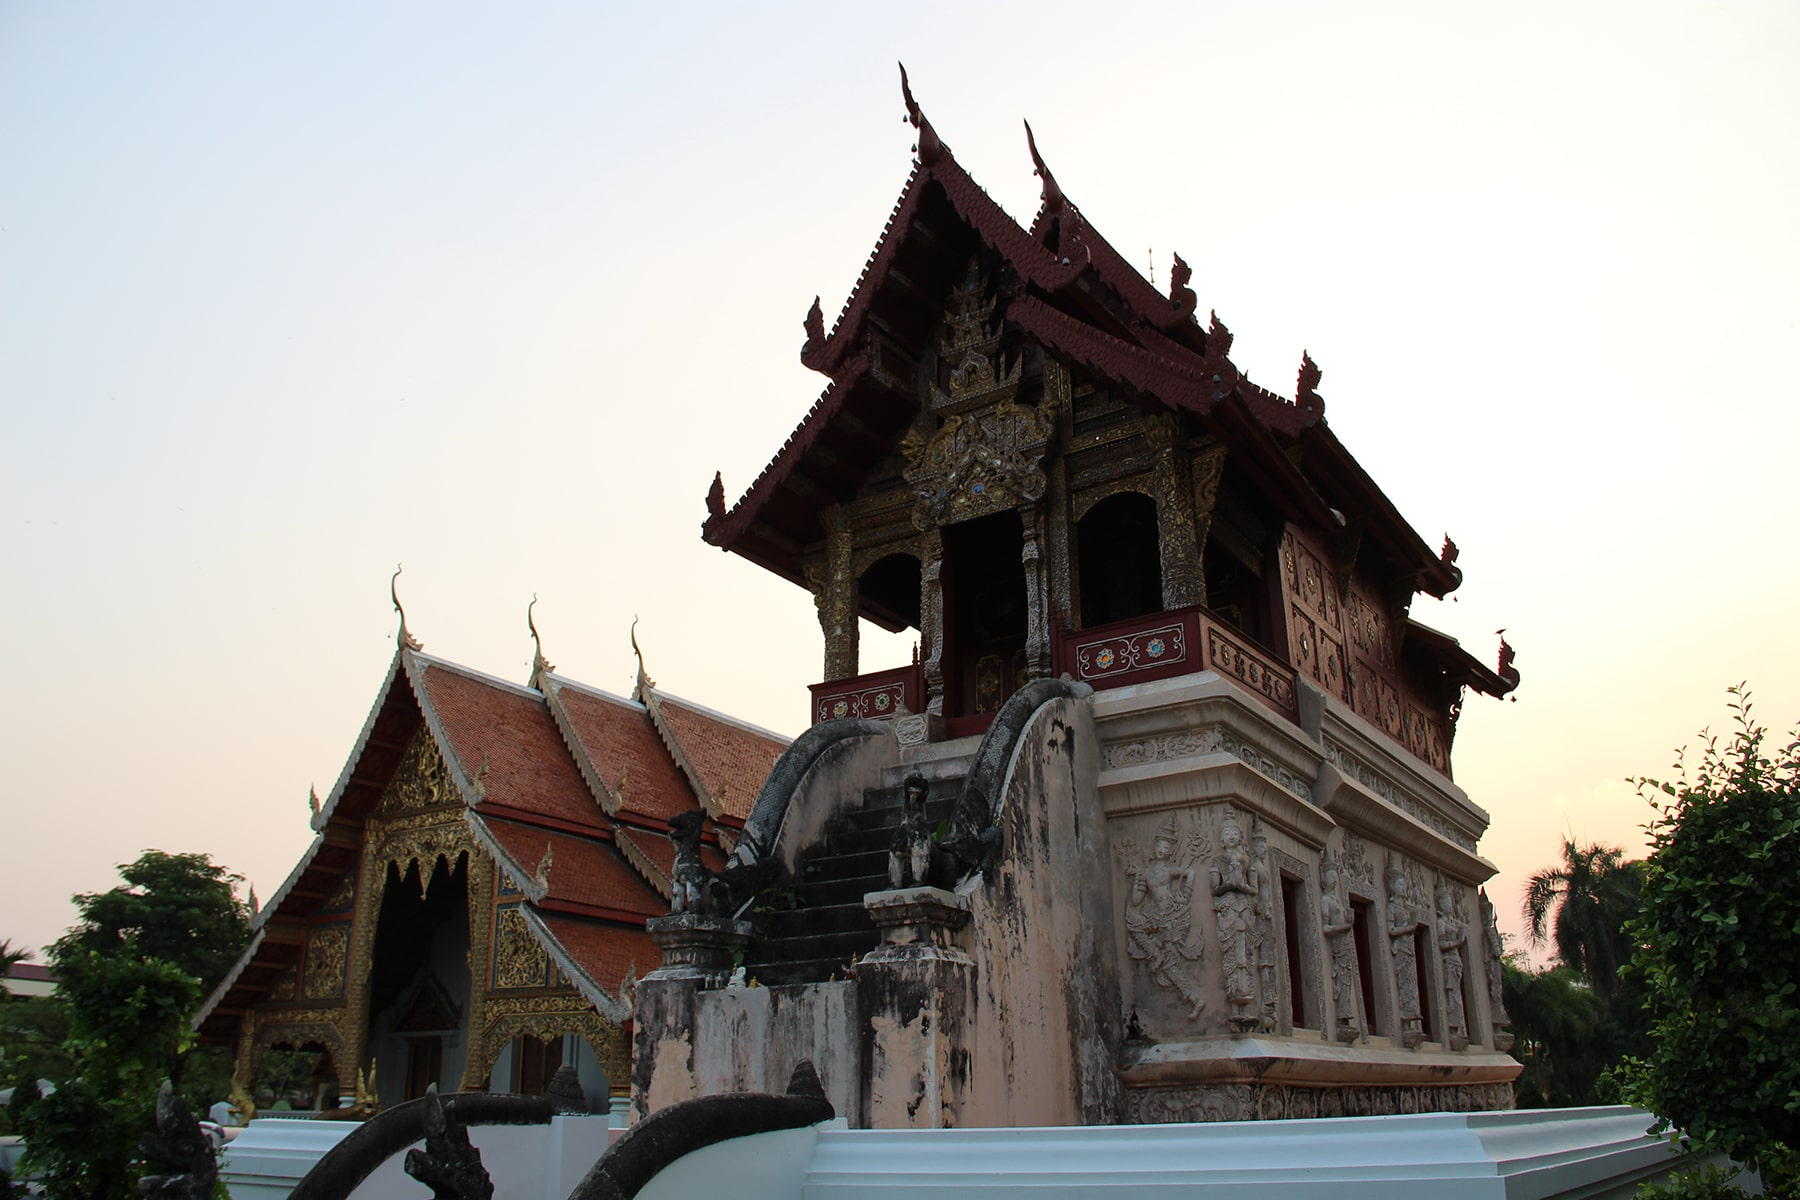 Library (Ho trai) of Chiang Mai Wat Phra Singh temple